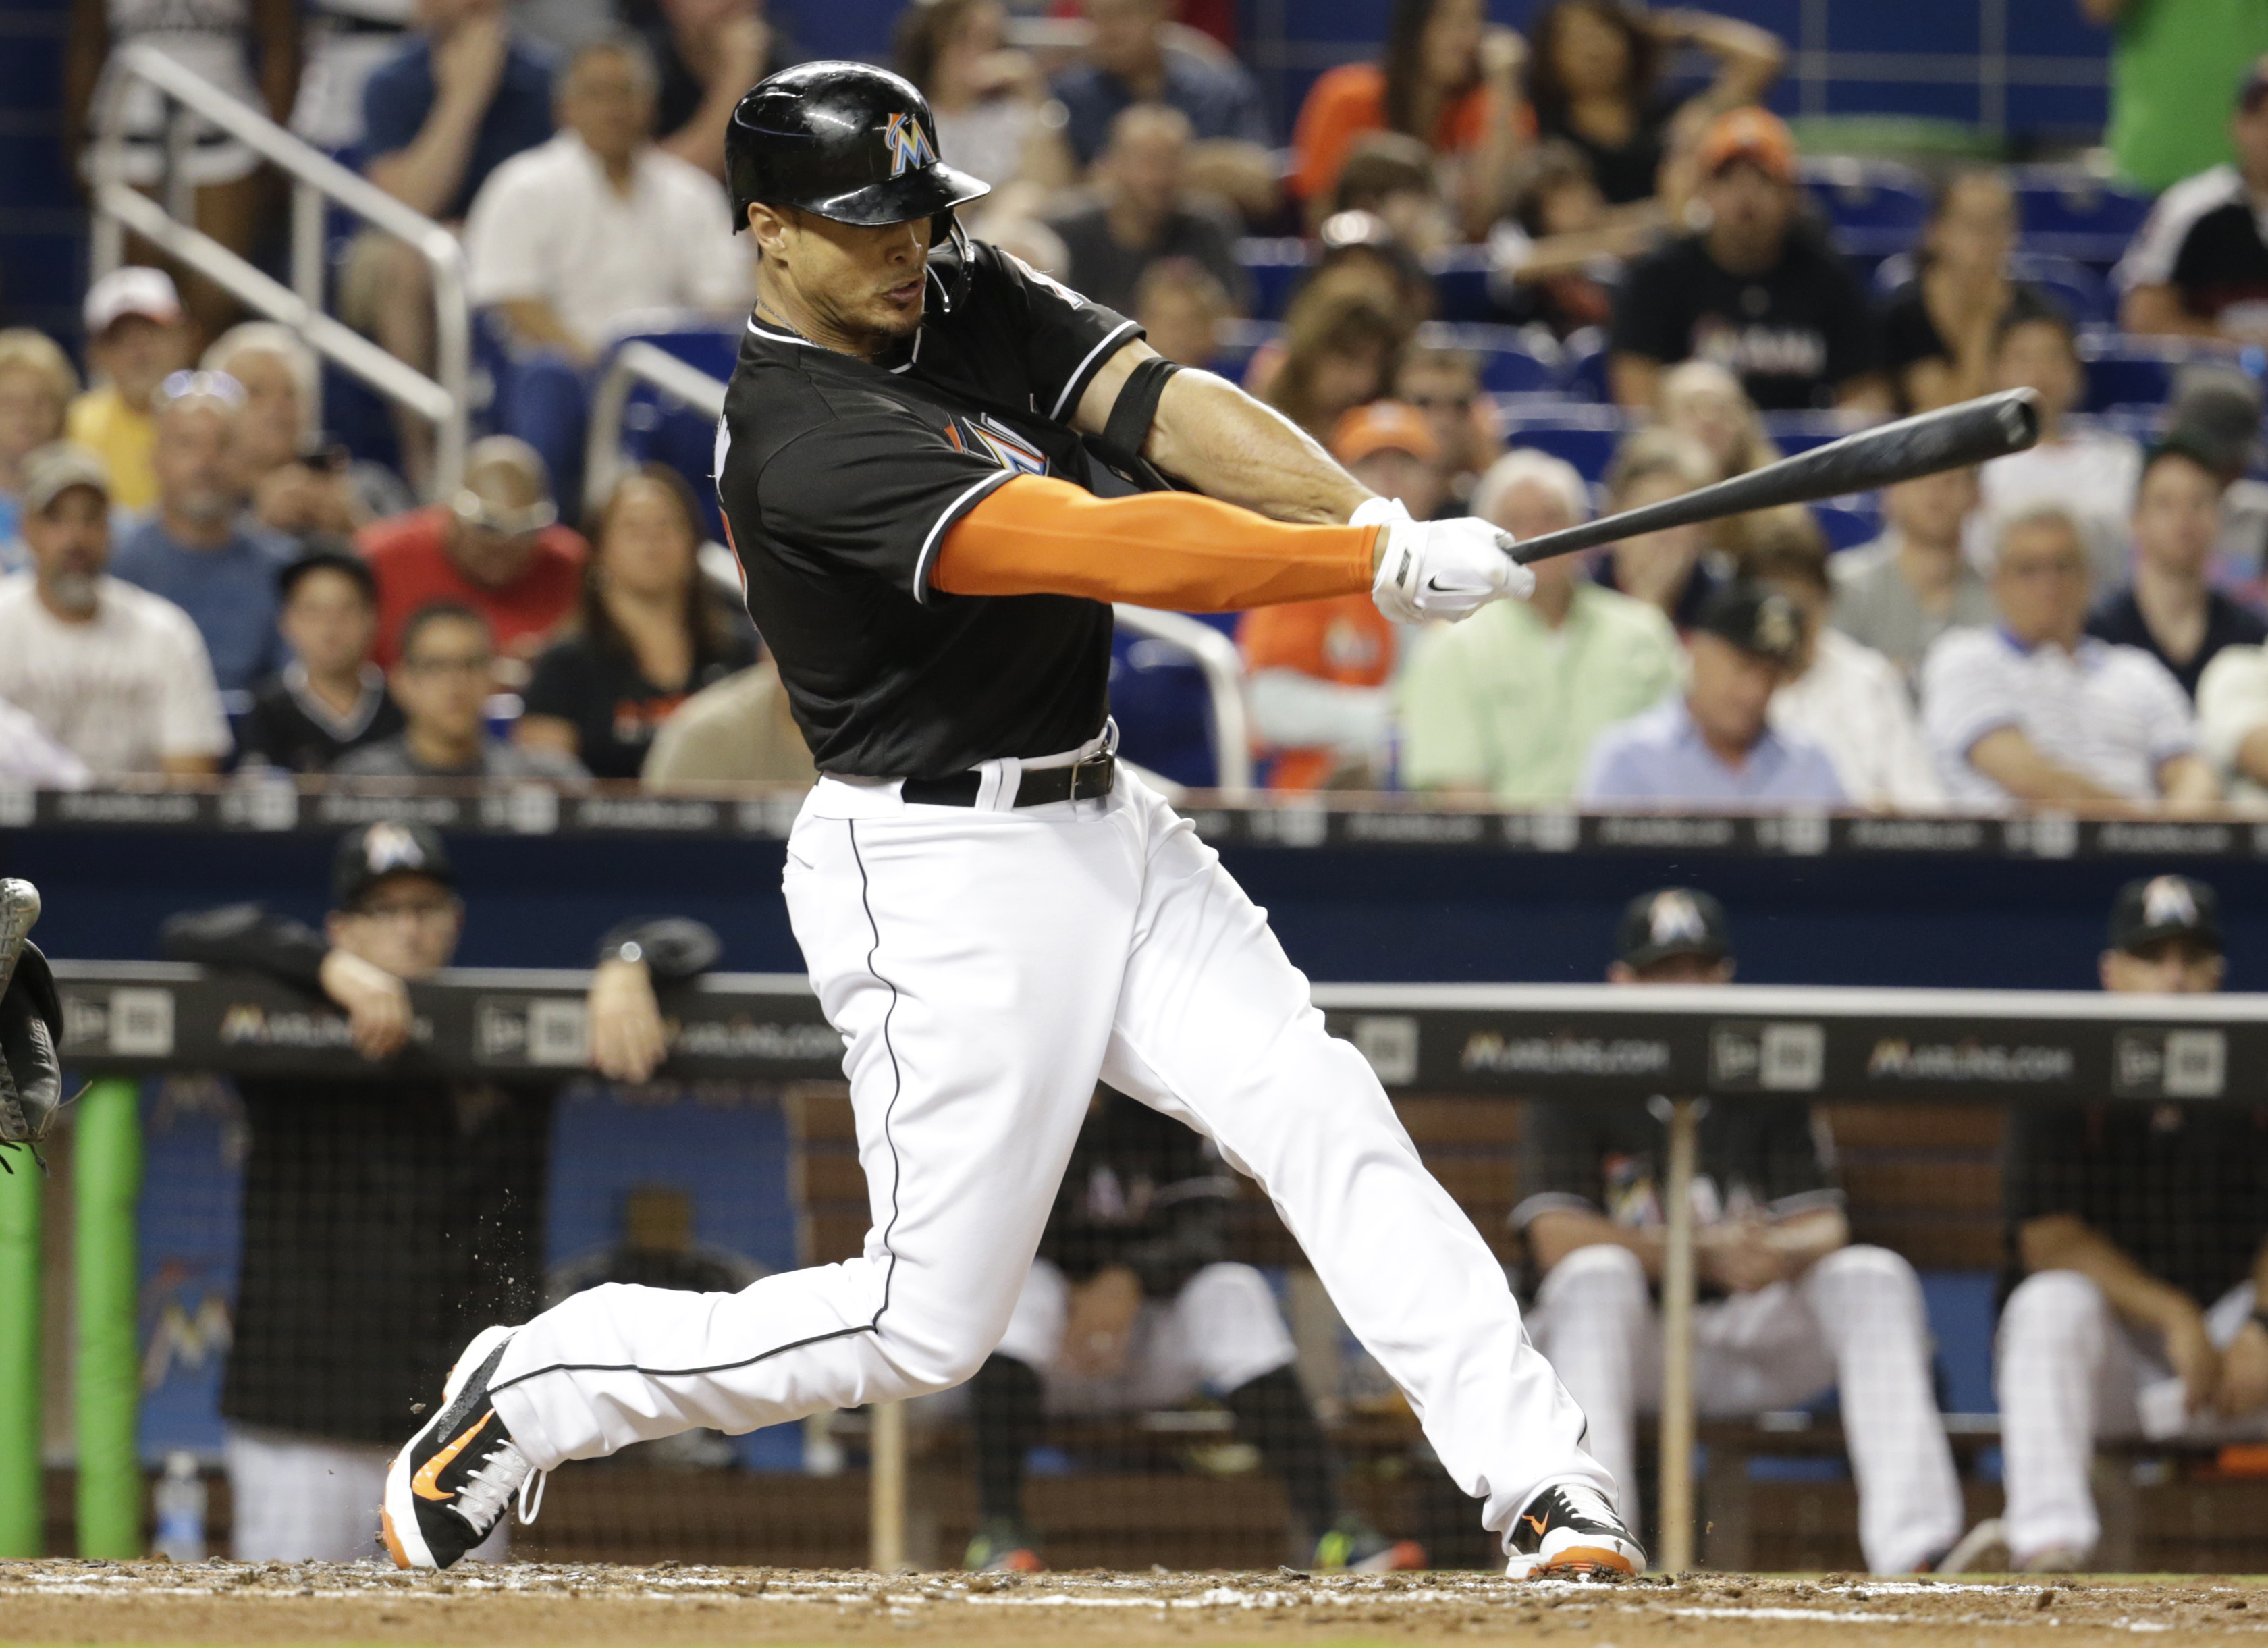 Miami Marlins' Giancarlo Stanton hits a single in the third inning of a baseball game against the Atlanta Braves, Saturday, April 16, 2016, in Miami. (AP Photo/Lynne Sladky)